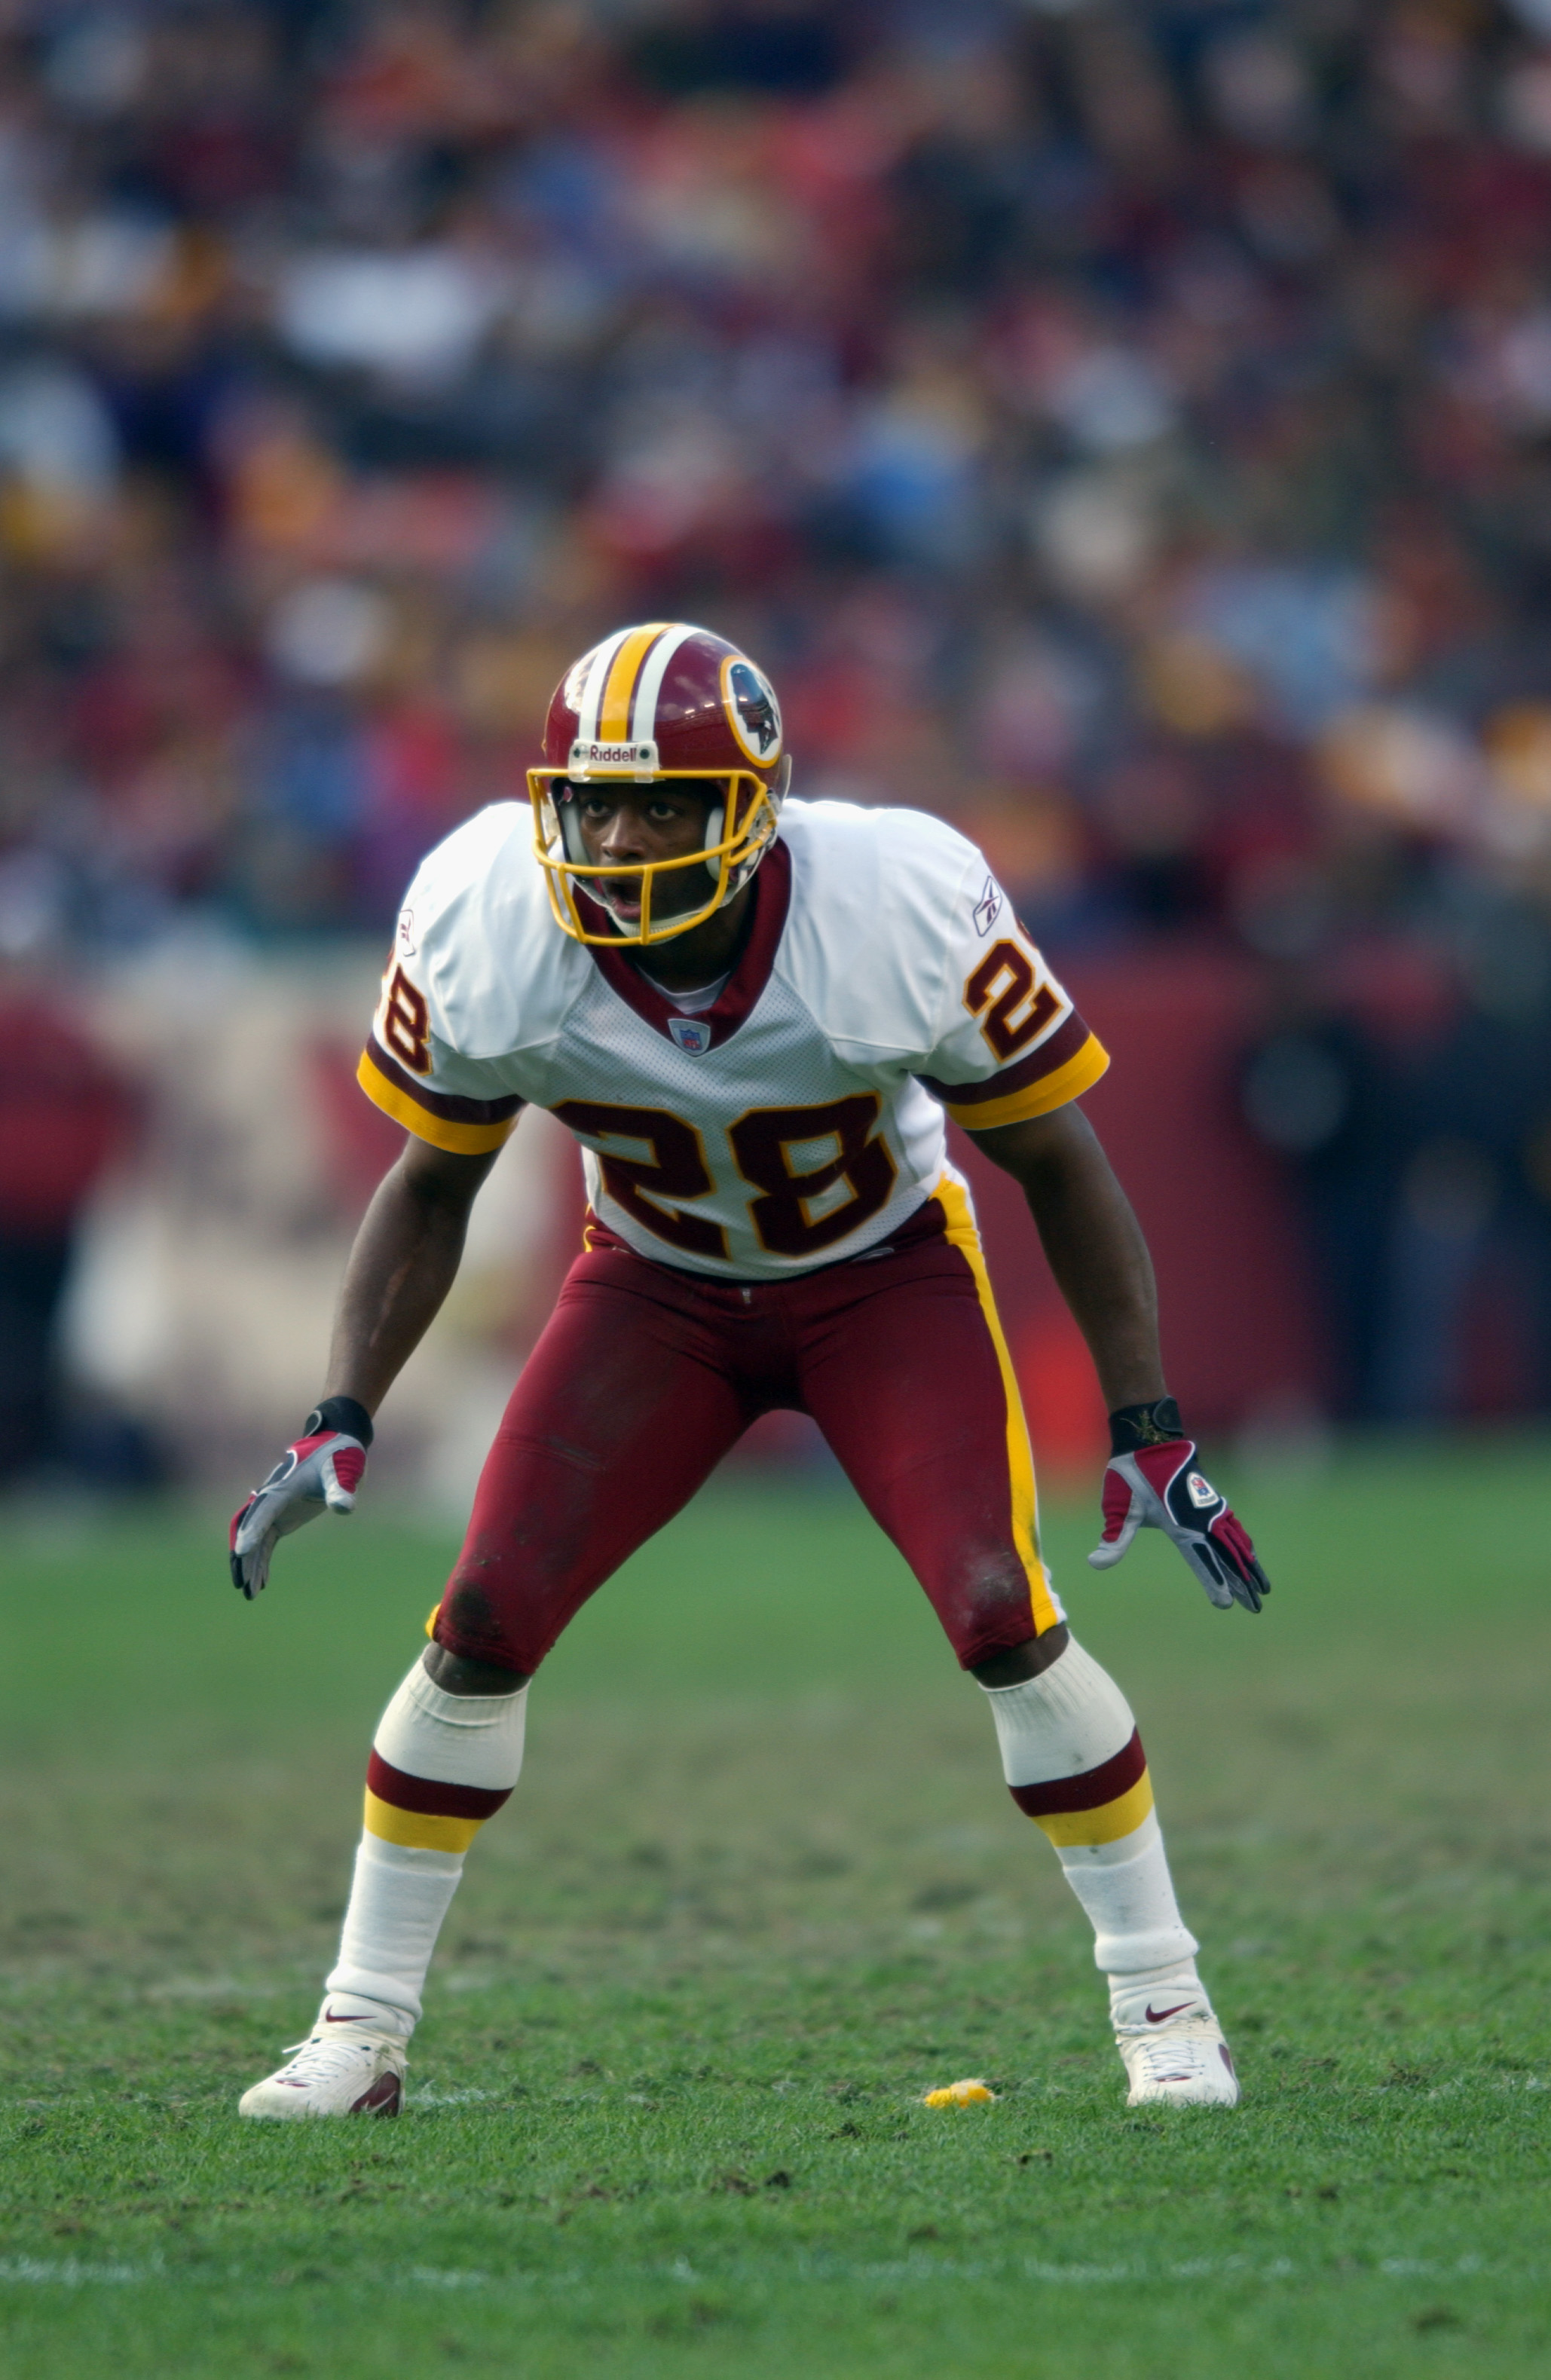 Darrell Green Played Cornerback For The Redskins